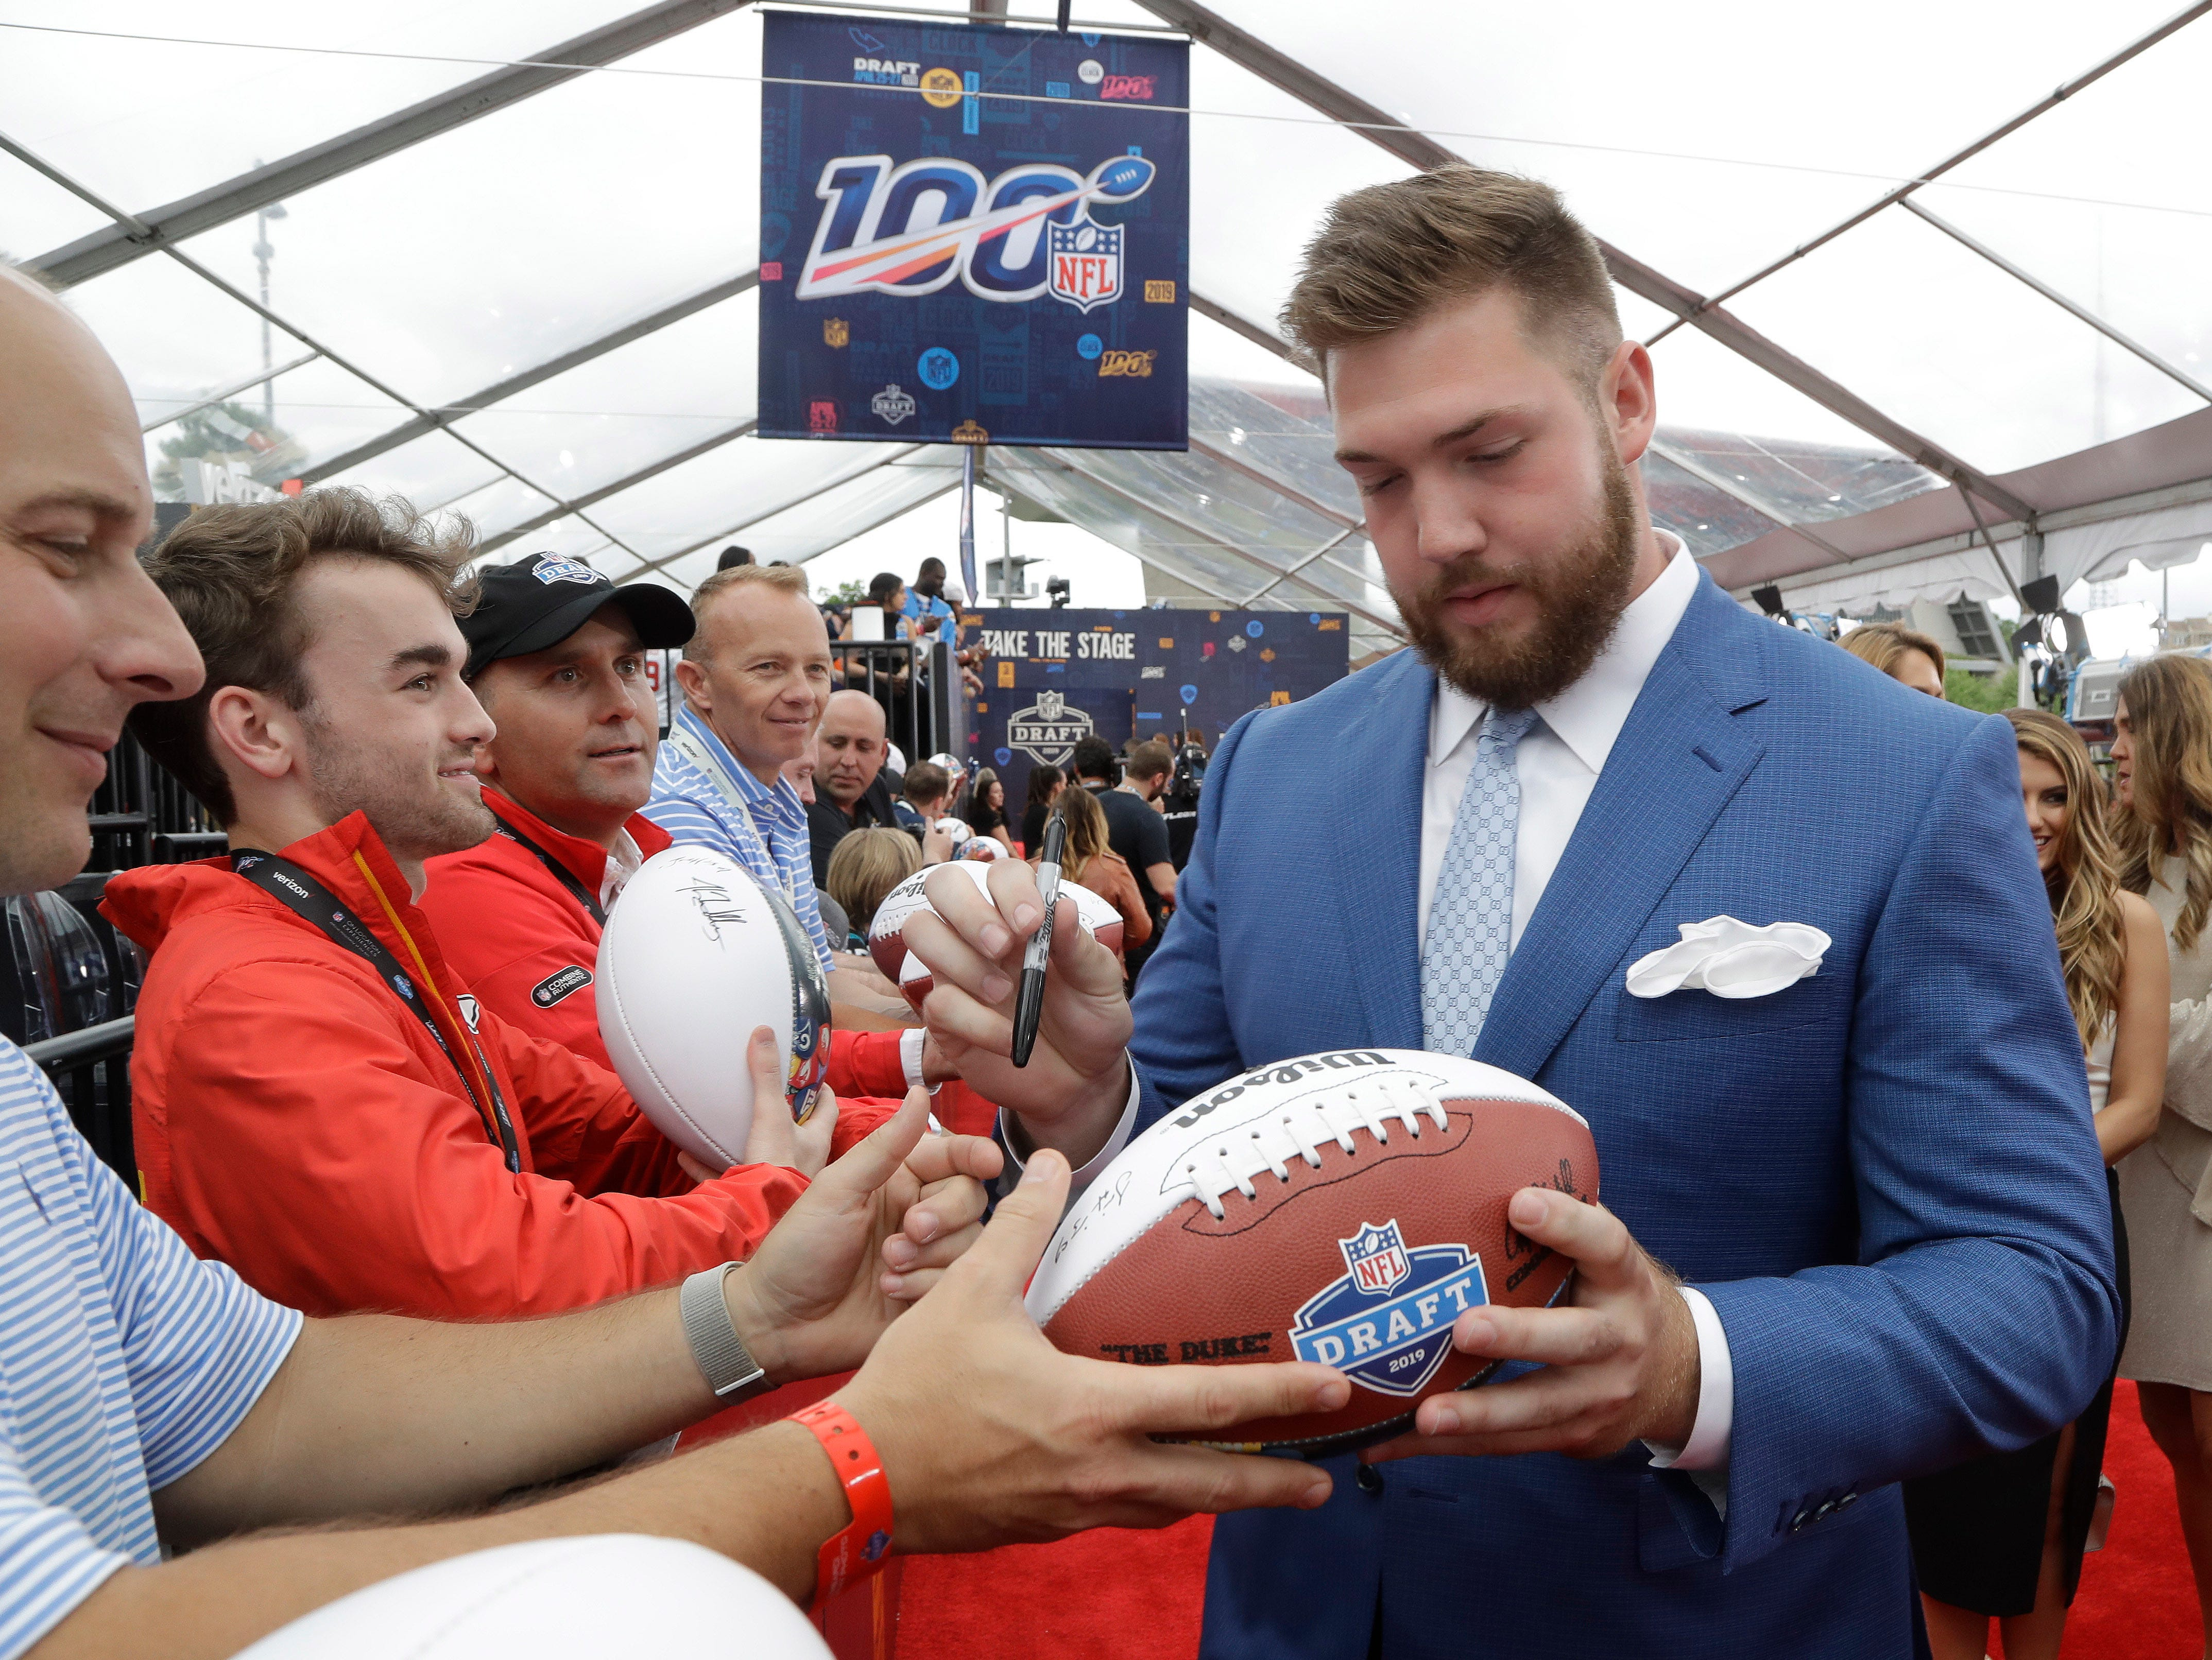 Alabama tackle Jonah Williams signs an autograph as he walks the red carpet ahead of the first round at the NFL football draft, Thursday, April 25, 2019, in Nashville, Tenn. (AP Photo/Steve Helber)